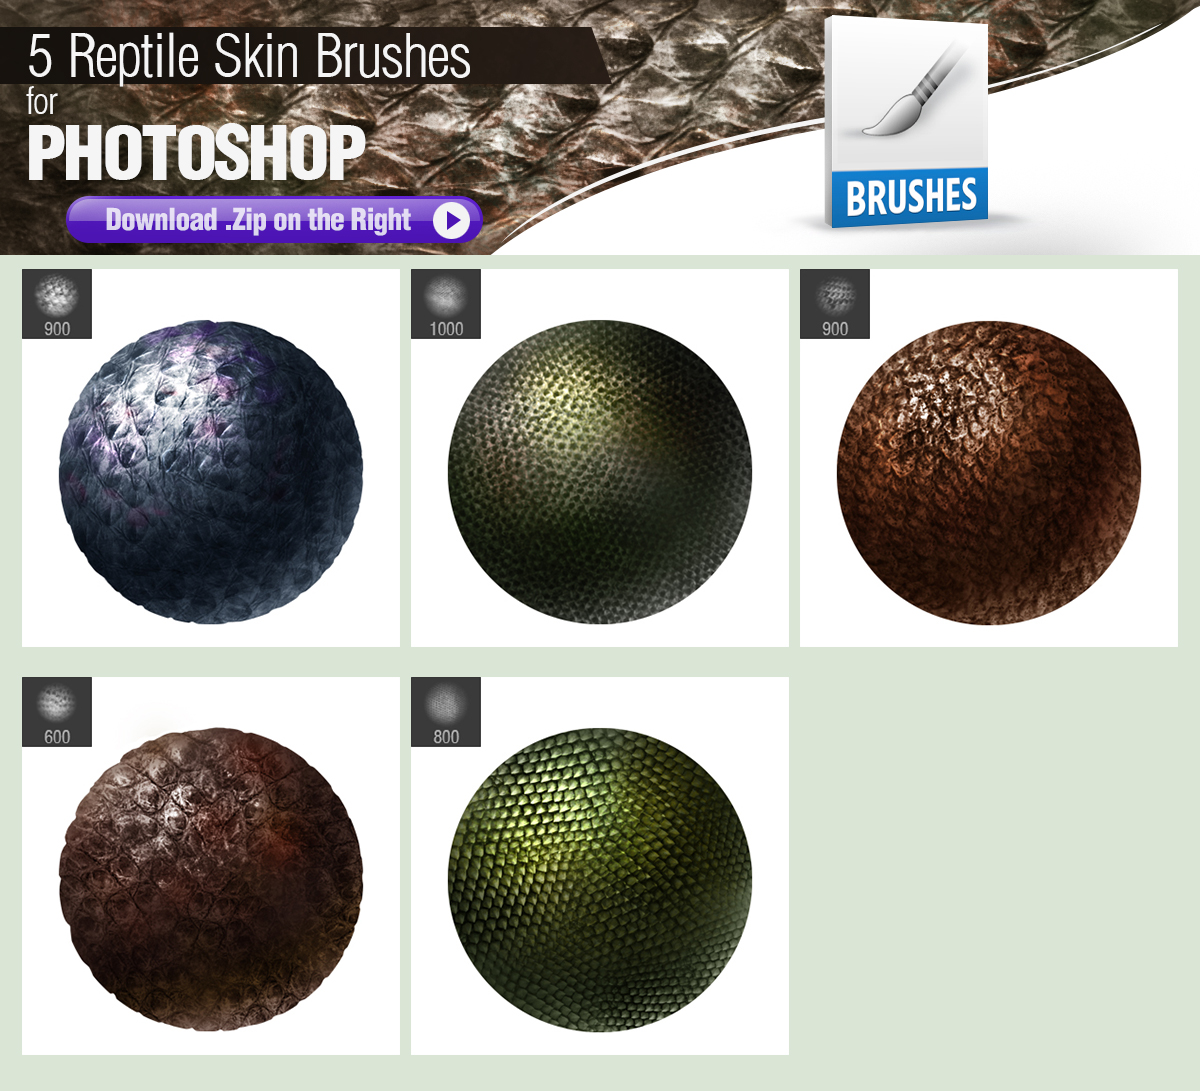 5 Photoshop Brushes for Painting Reptile Skin by pixelstains on ...